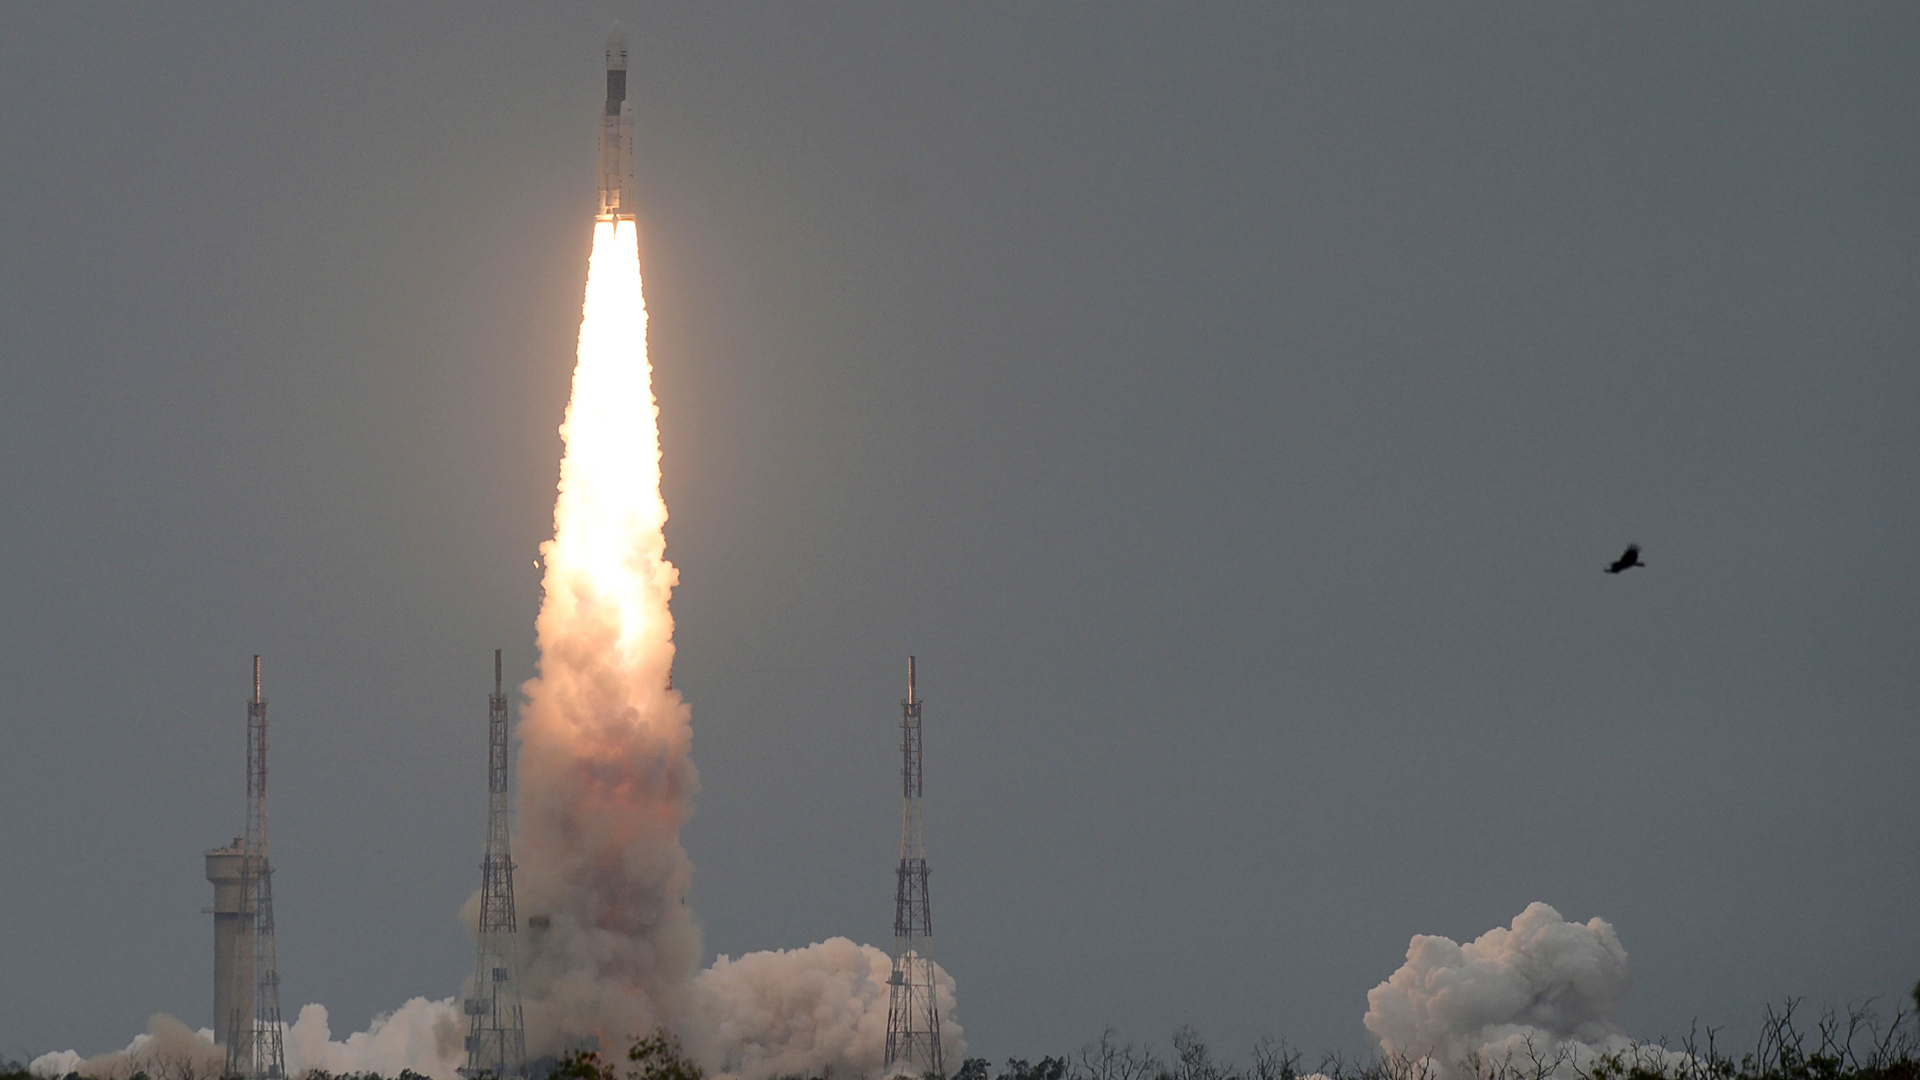 The Indian Space Research Organization's (ISRO) Chandrayaan-2, with on board the Geosynchronous Satellite Launch Vehicle, launches at the Satish Dhawan Space Centre in Sriharikota, an island off the coast of southern Andhra Pradesh state, on July 22, 2019. (Credit: Arun Sankar/AFP/Getty Images)